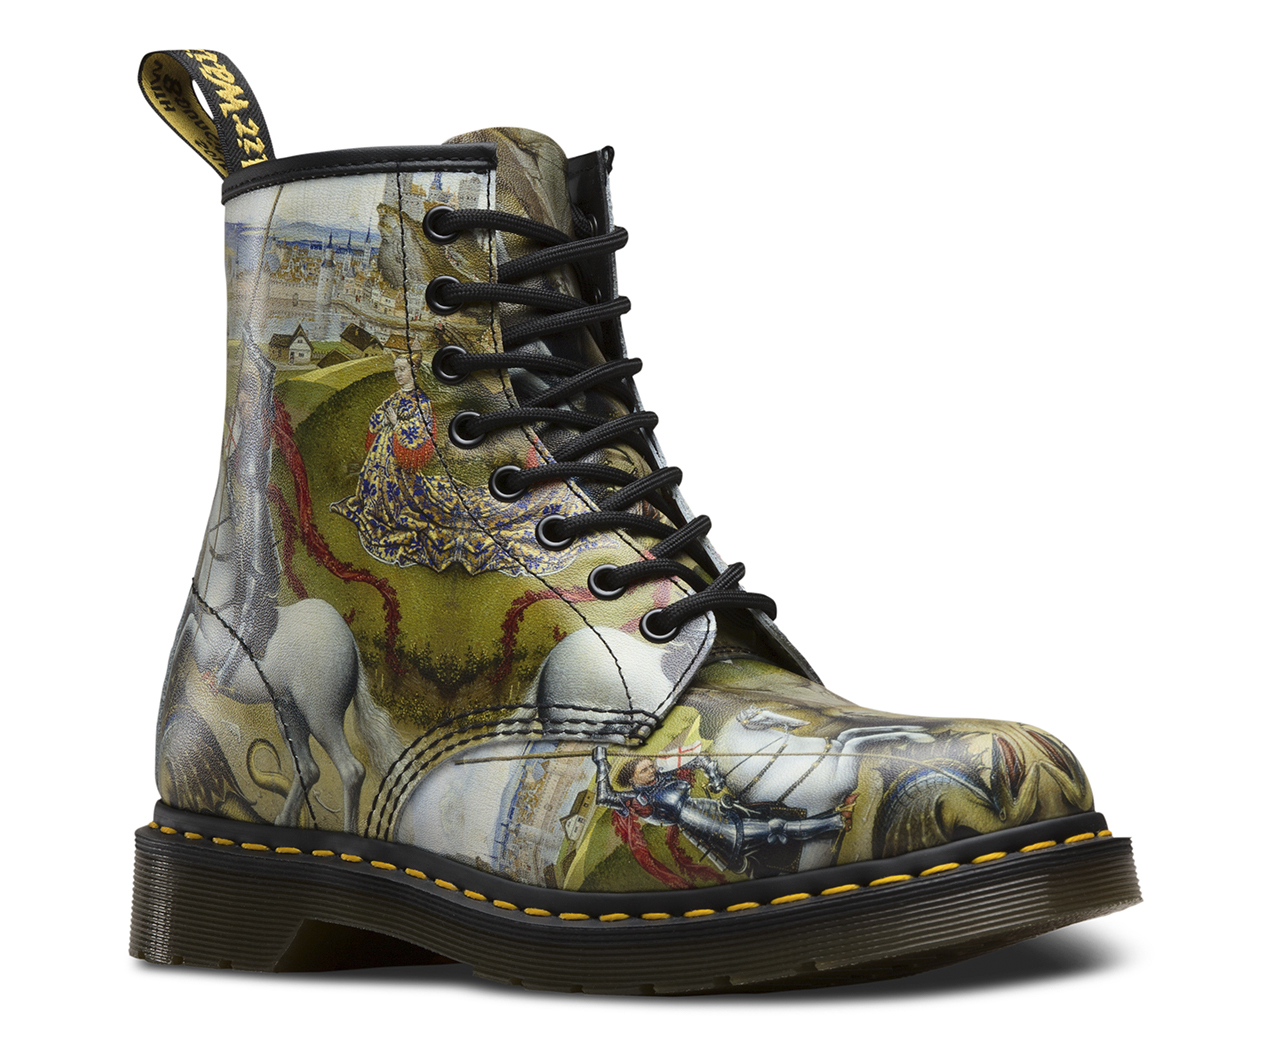 Dr. Martens 1460 Multi George & Dragon Backhand 22432102, Boots - 39 EU